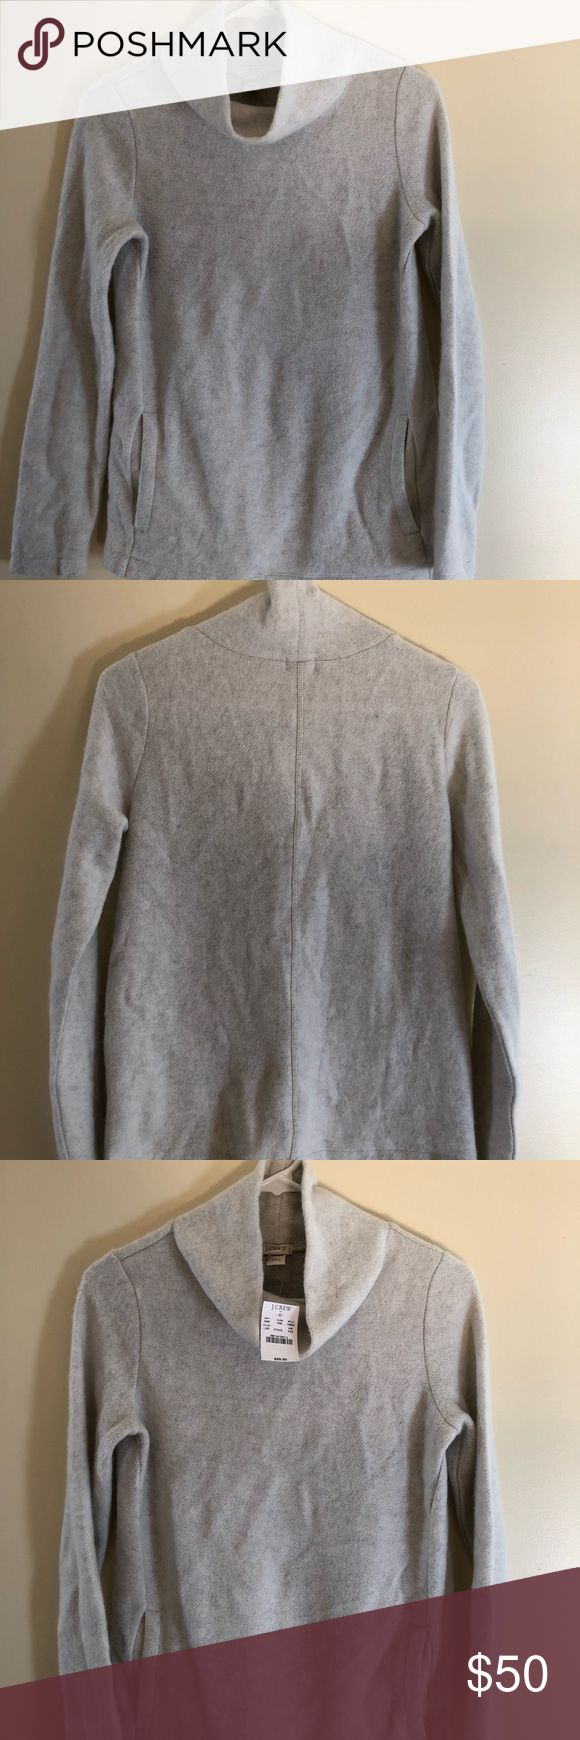 JCREW Fleece Pullover with pockets Size XXS Super cozy fleece pullover in light grey color from JCREW. Cowl neck turtleneck and has pockets! Great layering item for winter. J. Crew Sweaters Cowl & Turtlenecks